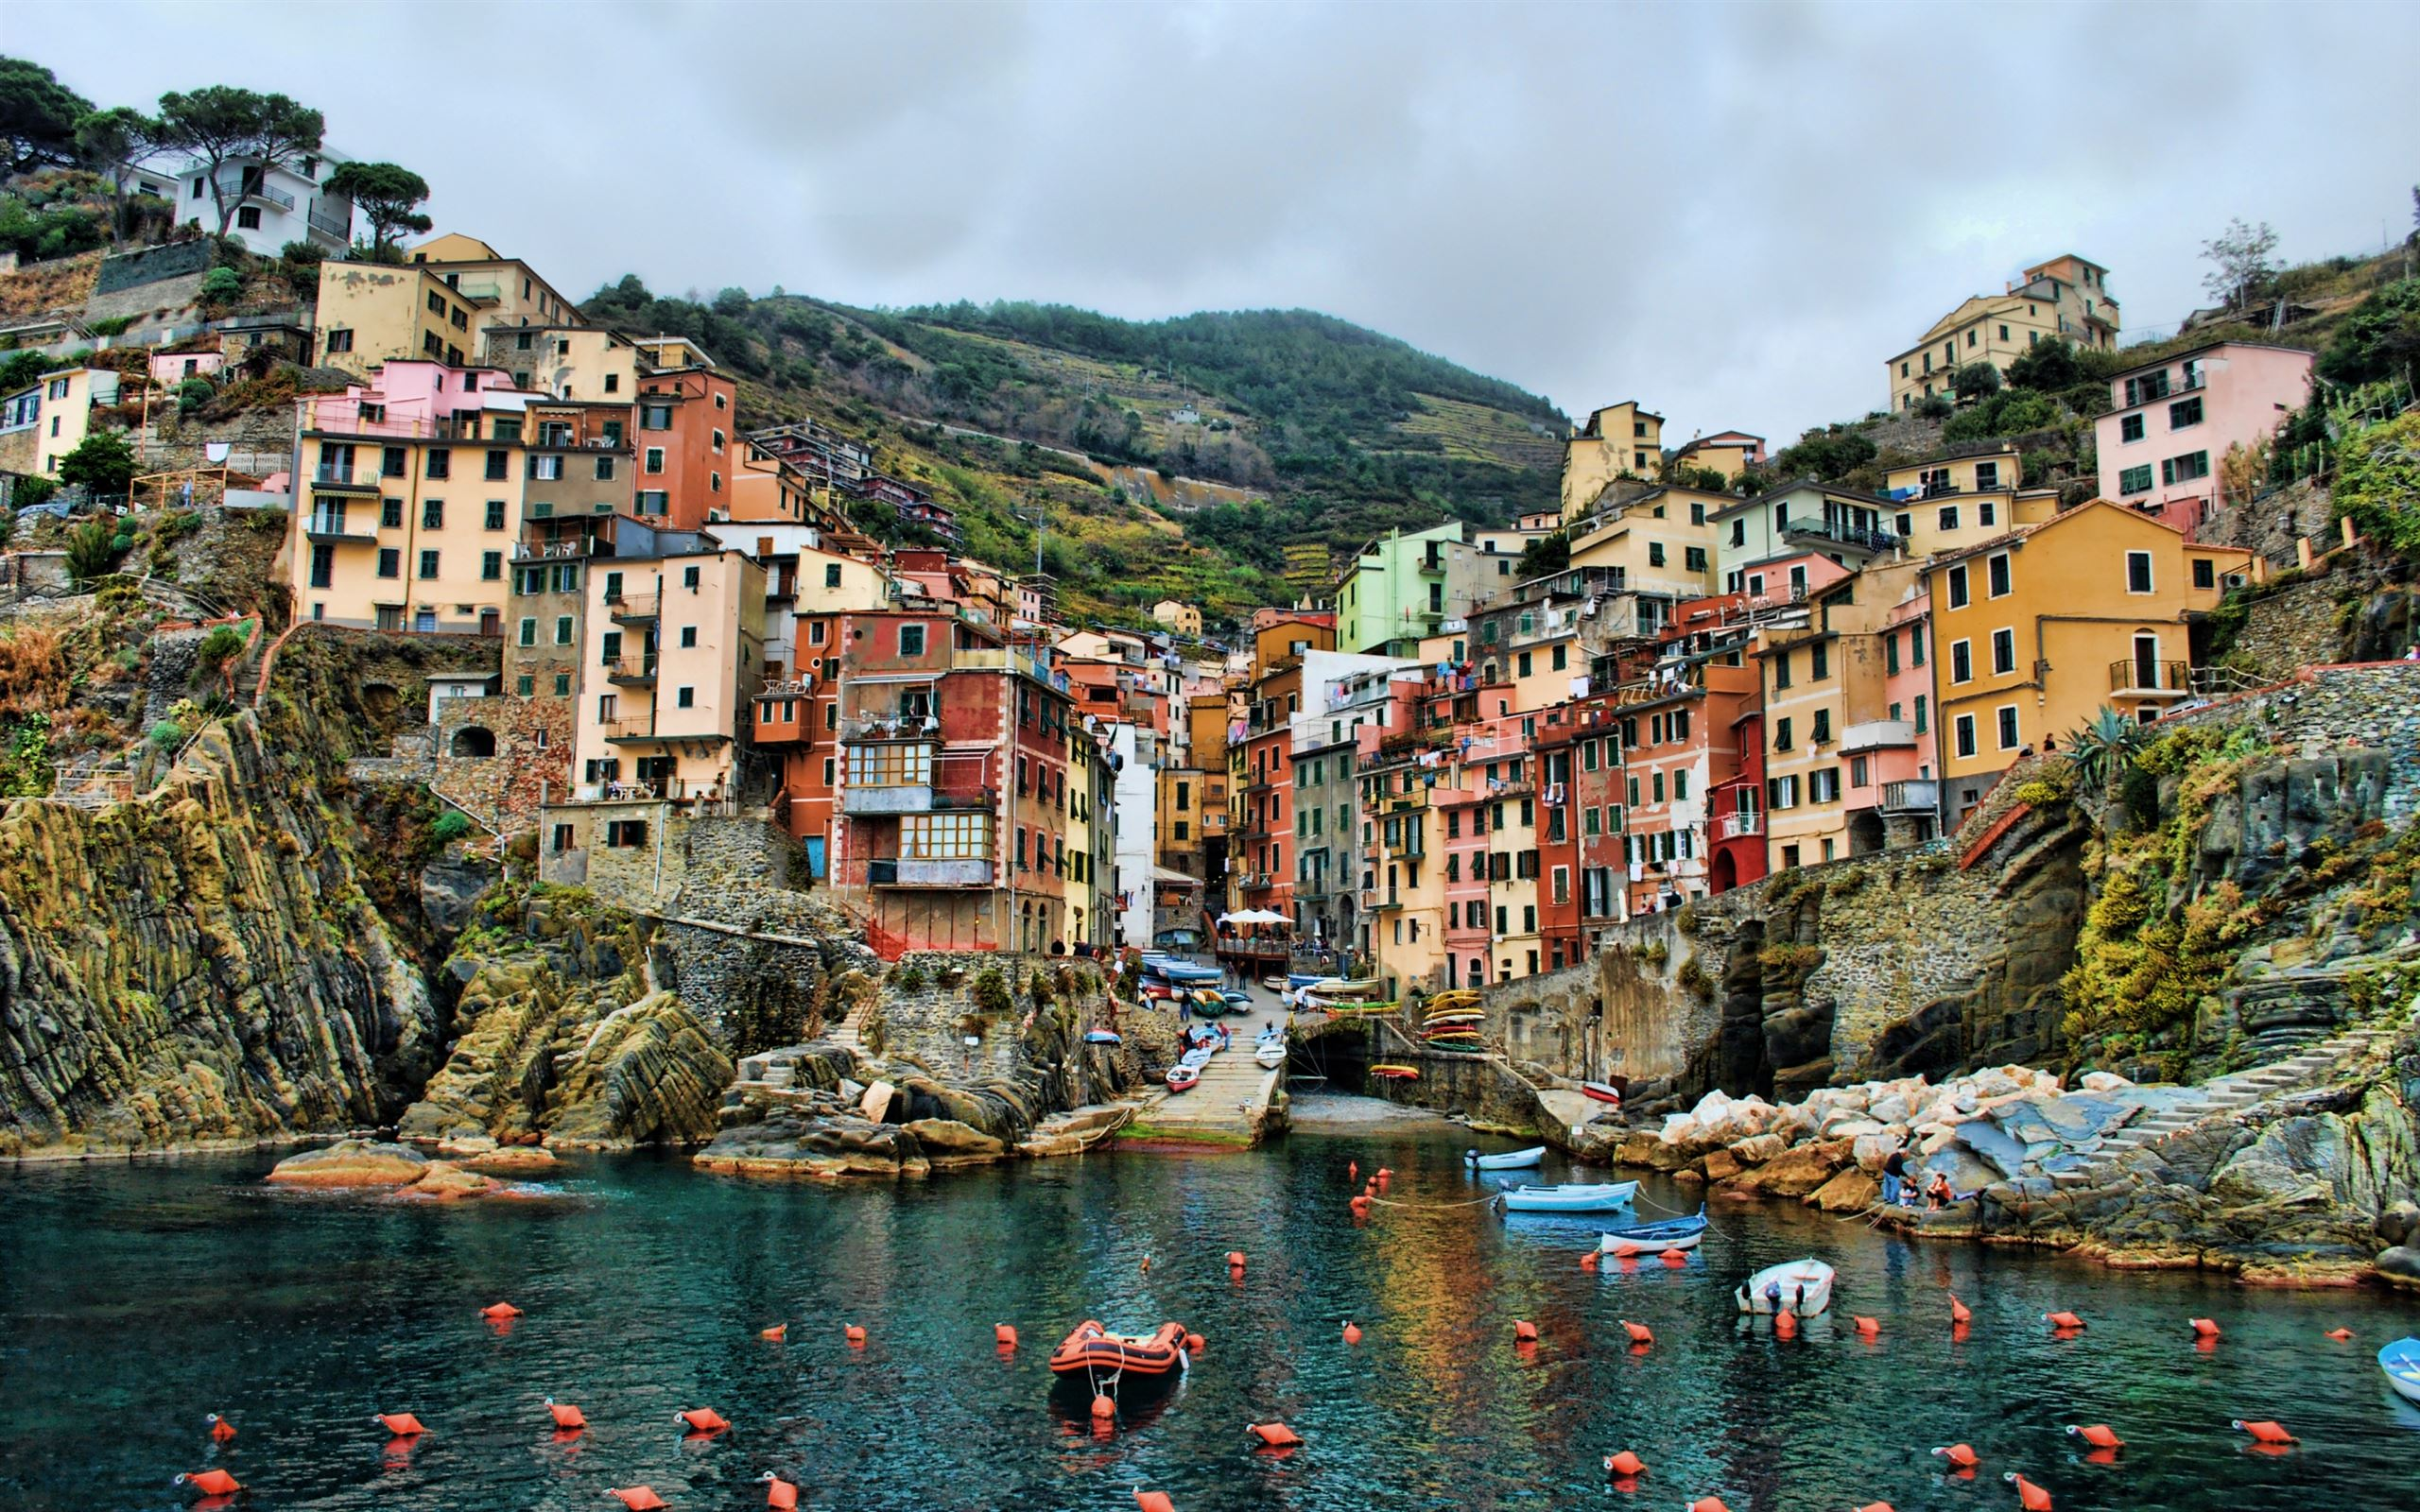 riomaggiore italy mac wallpaper download | free mac wallpapers download